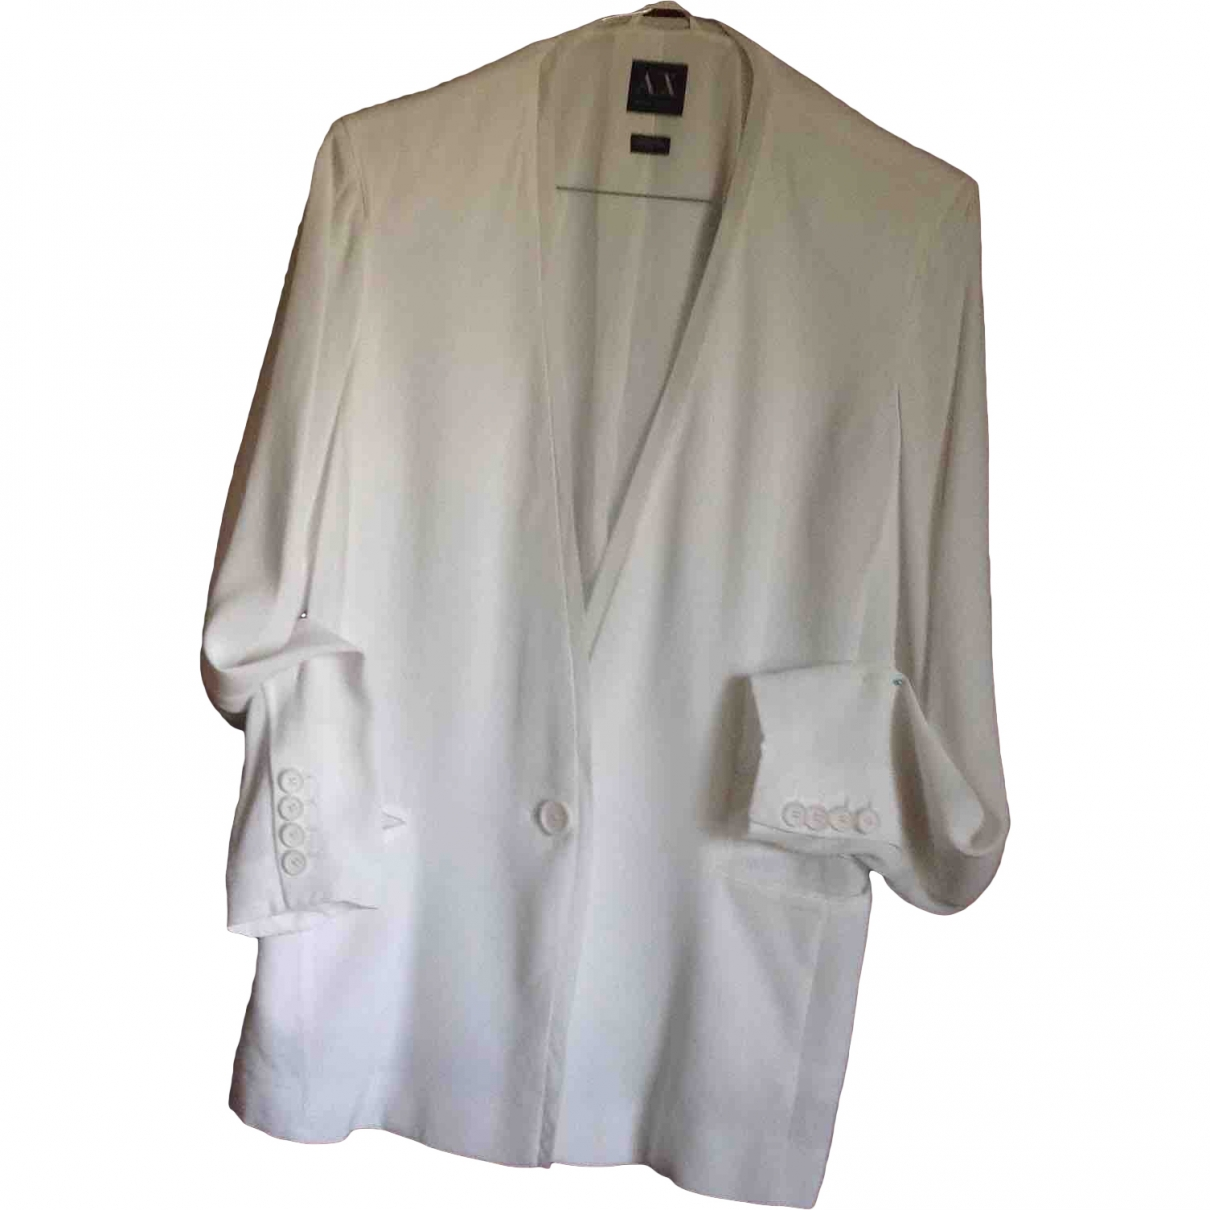 Emporio Armani \N Jacke in  Weiss Polyester